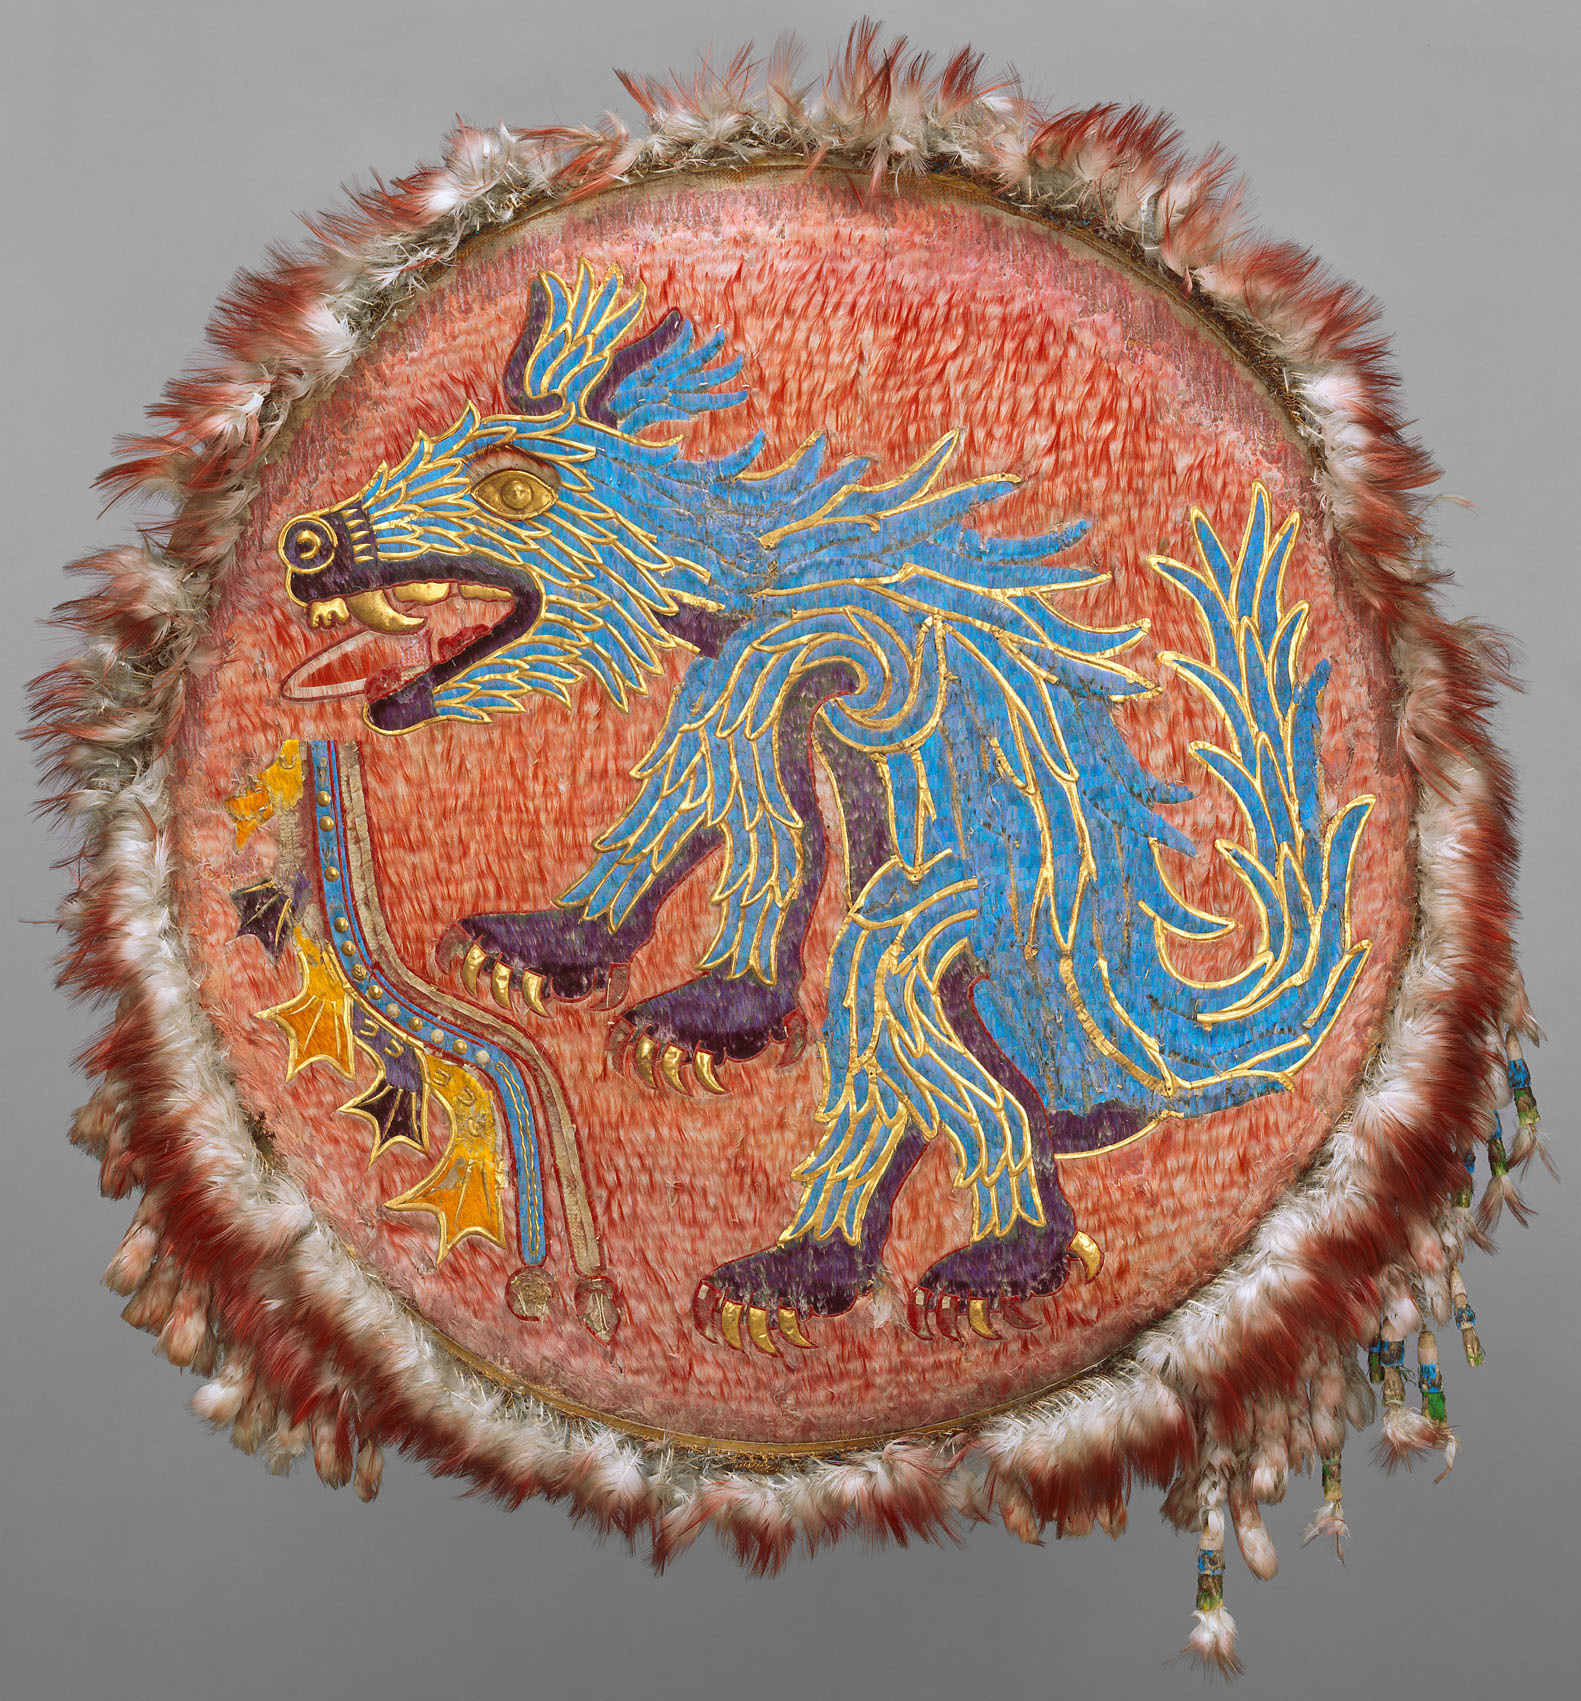 Mesoamerican Feather Shield with Coyote | Circa 1500 © KHM-Museumsverband